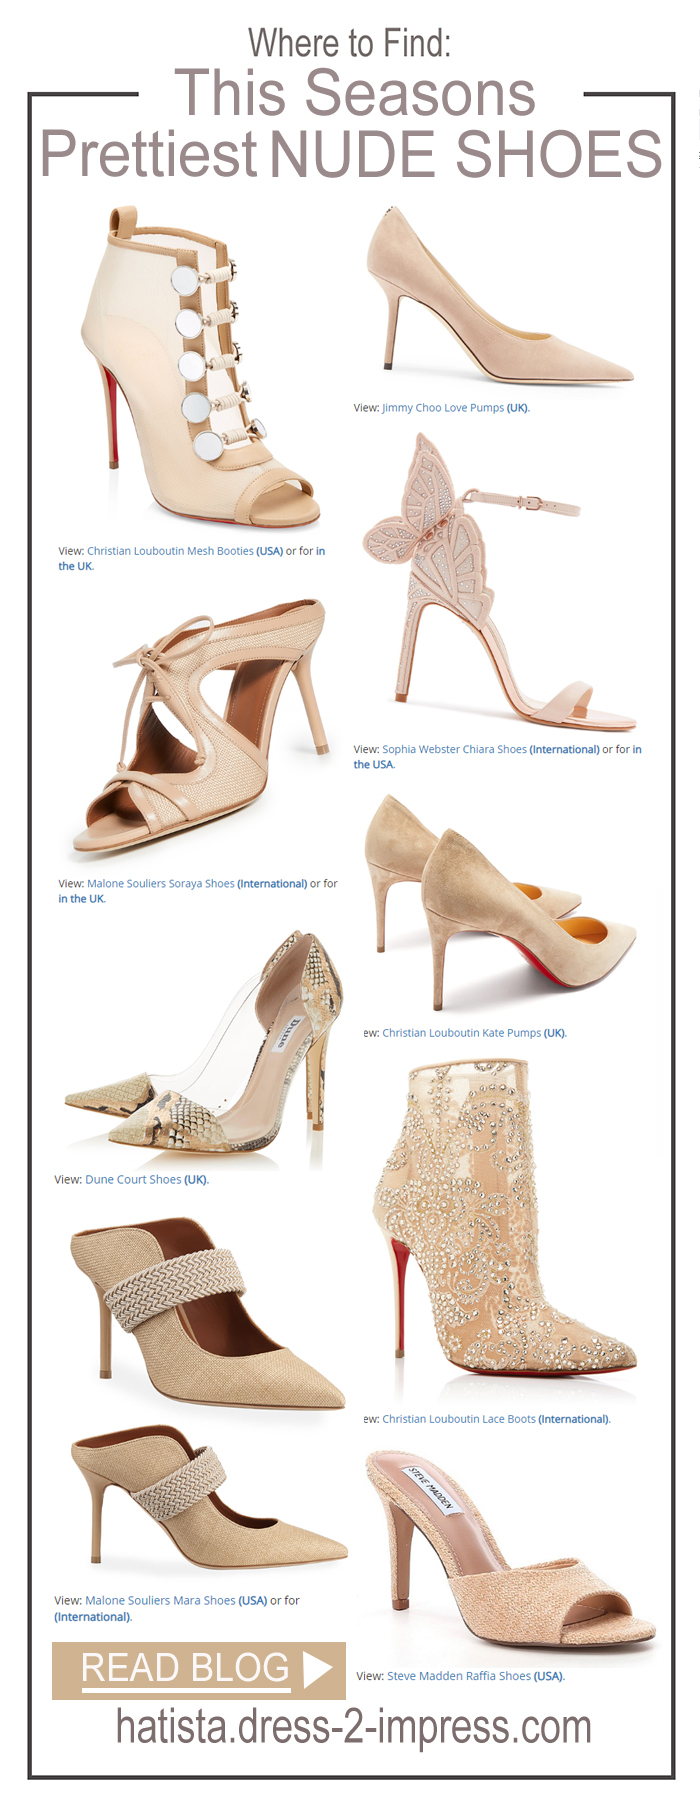 Where to find the best Nude Shoes, Best Nude Shoes for a Summer wedding Guest 2020, Best shoes for spring summer Weddings, Budget Nude Shoes, Luxury Shoes, Designer Nude Shoes. Nude Shoes on a Budget